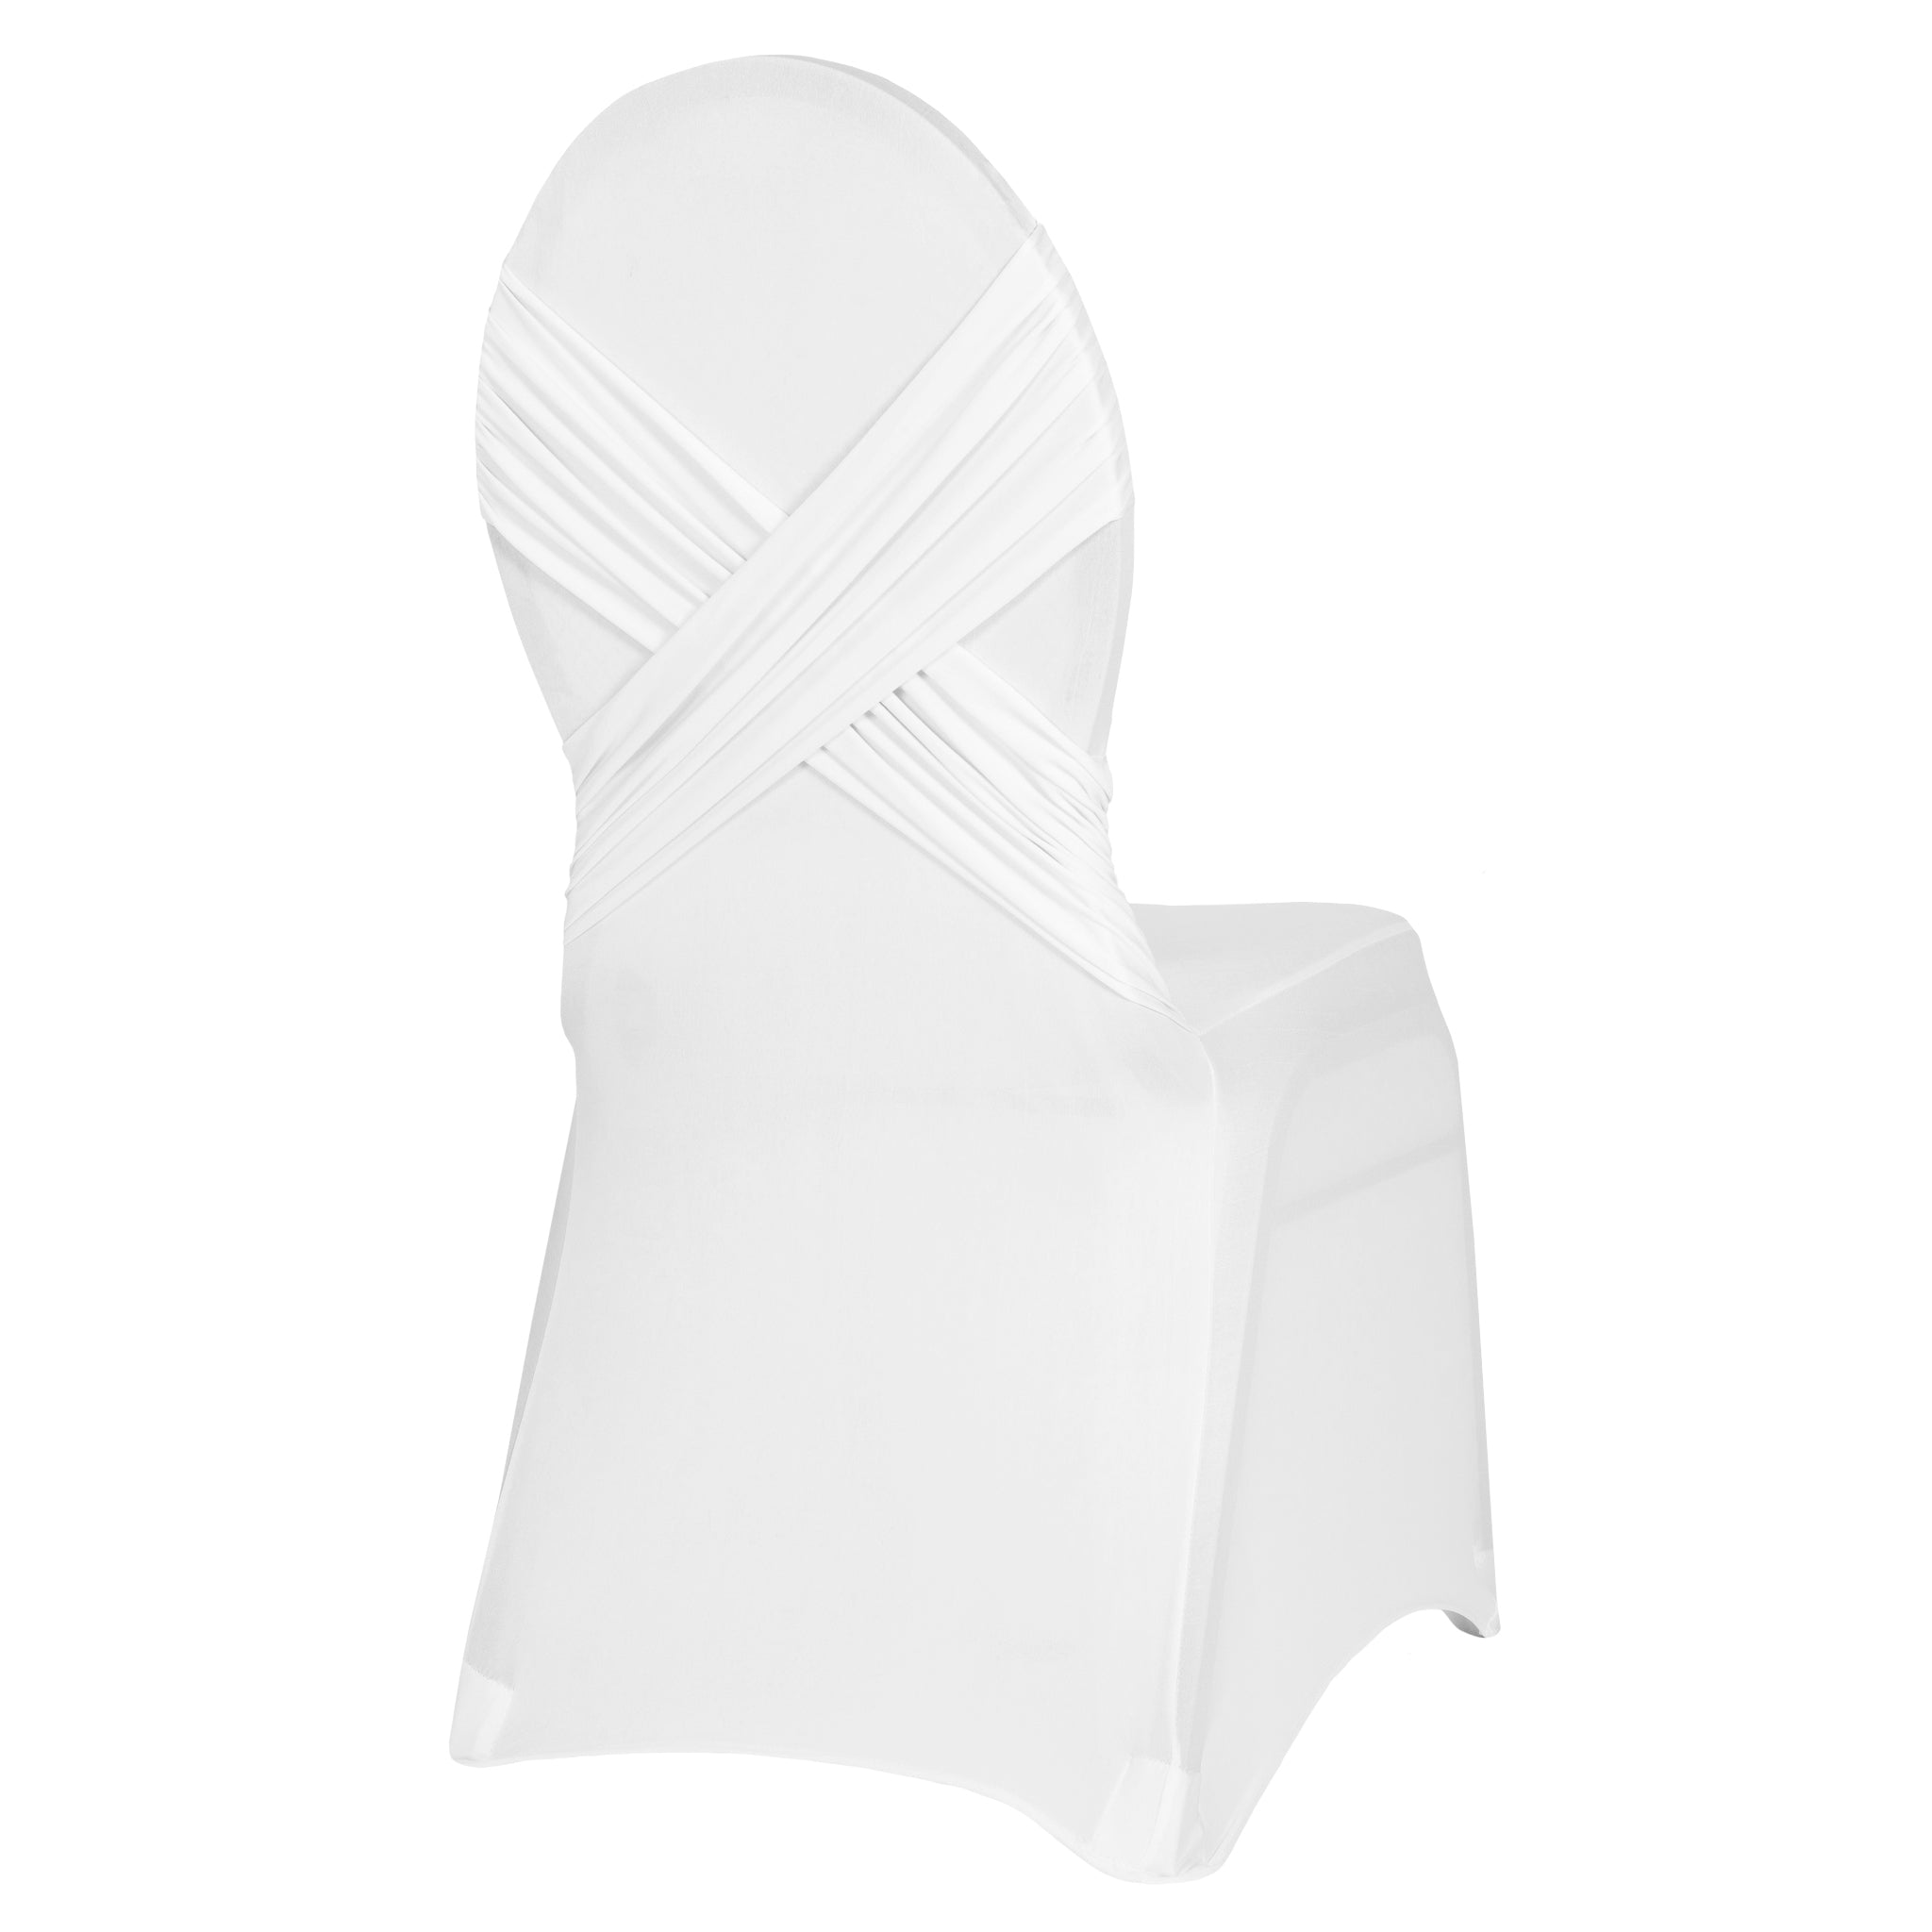 Astounding Spandex Chair Covers For Sale In Johannesburg Caraccident5 Cool Chair Designs And Ideas Caraccident5Info